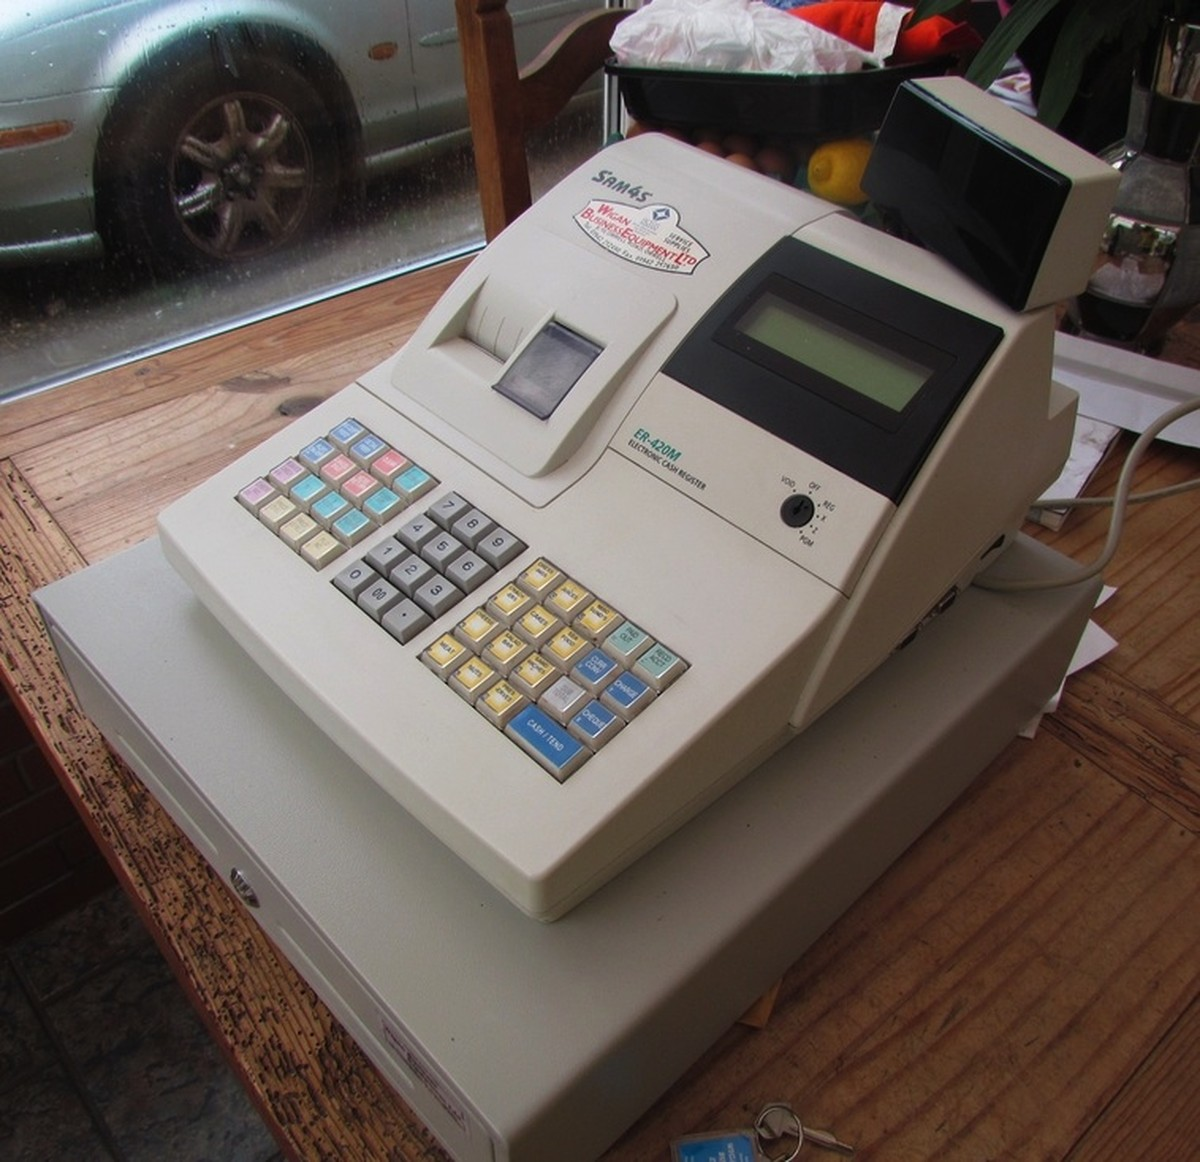 Cash Tills Direct is the first choice for thousands of customers looking to buy cash registers, tills, till rolls, ink ribbons, cash register keys and drawer inserts. Our range of Sharp, Casio and Sam4s cash registers and shop tills are probably the best prices that you will find on .